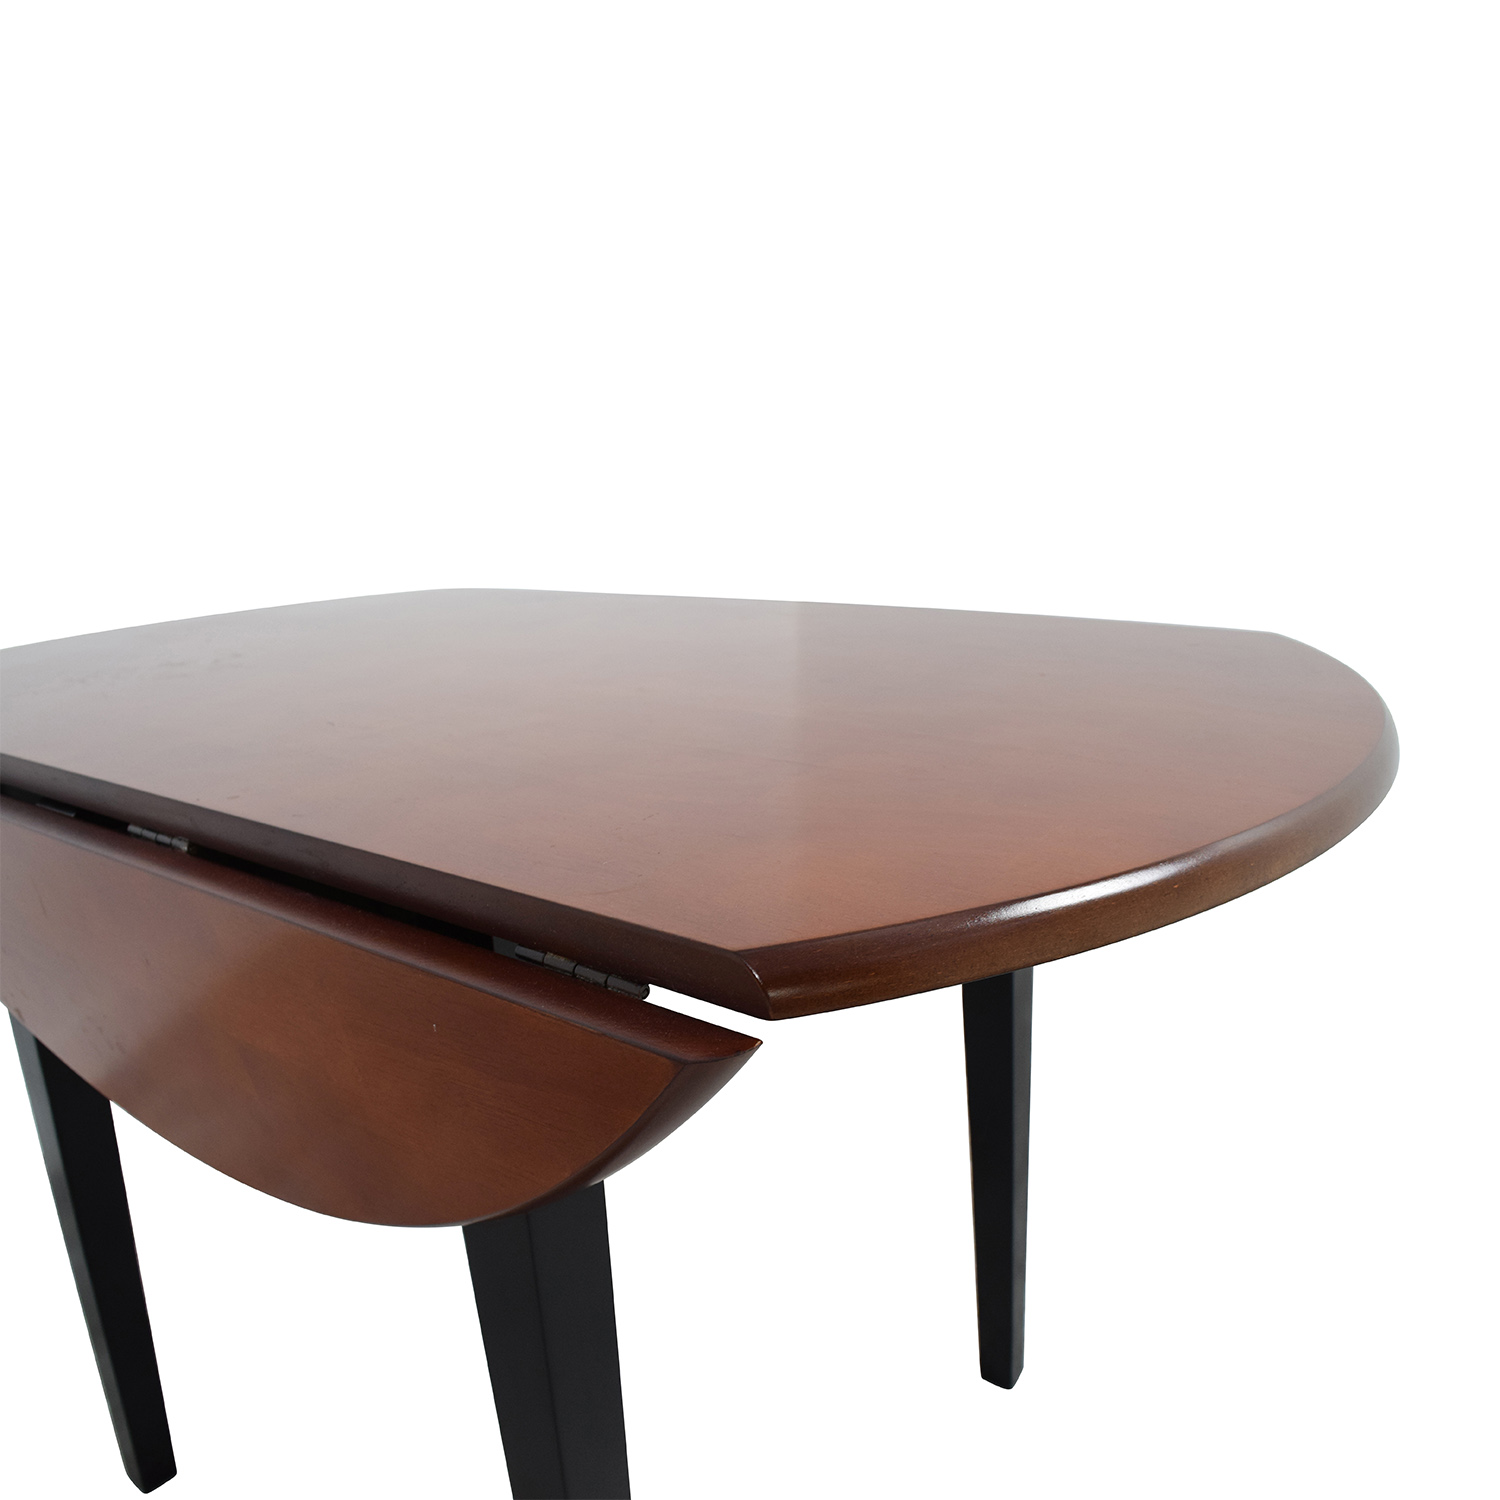 90 Off Bob 39 S Furniture Bob 39 S Furniture Brown Wood Round Kitchen Table Tables